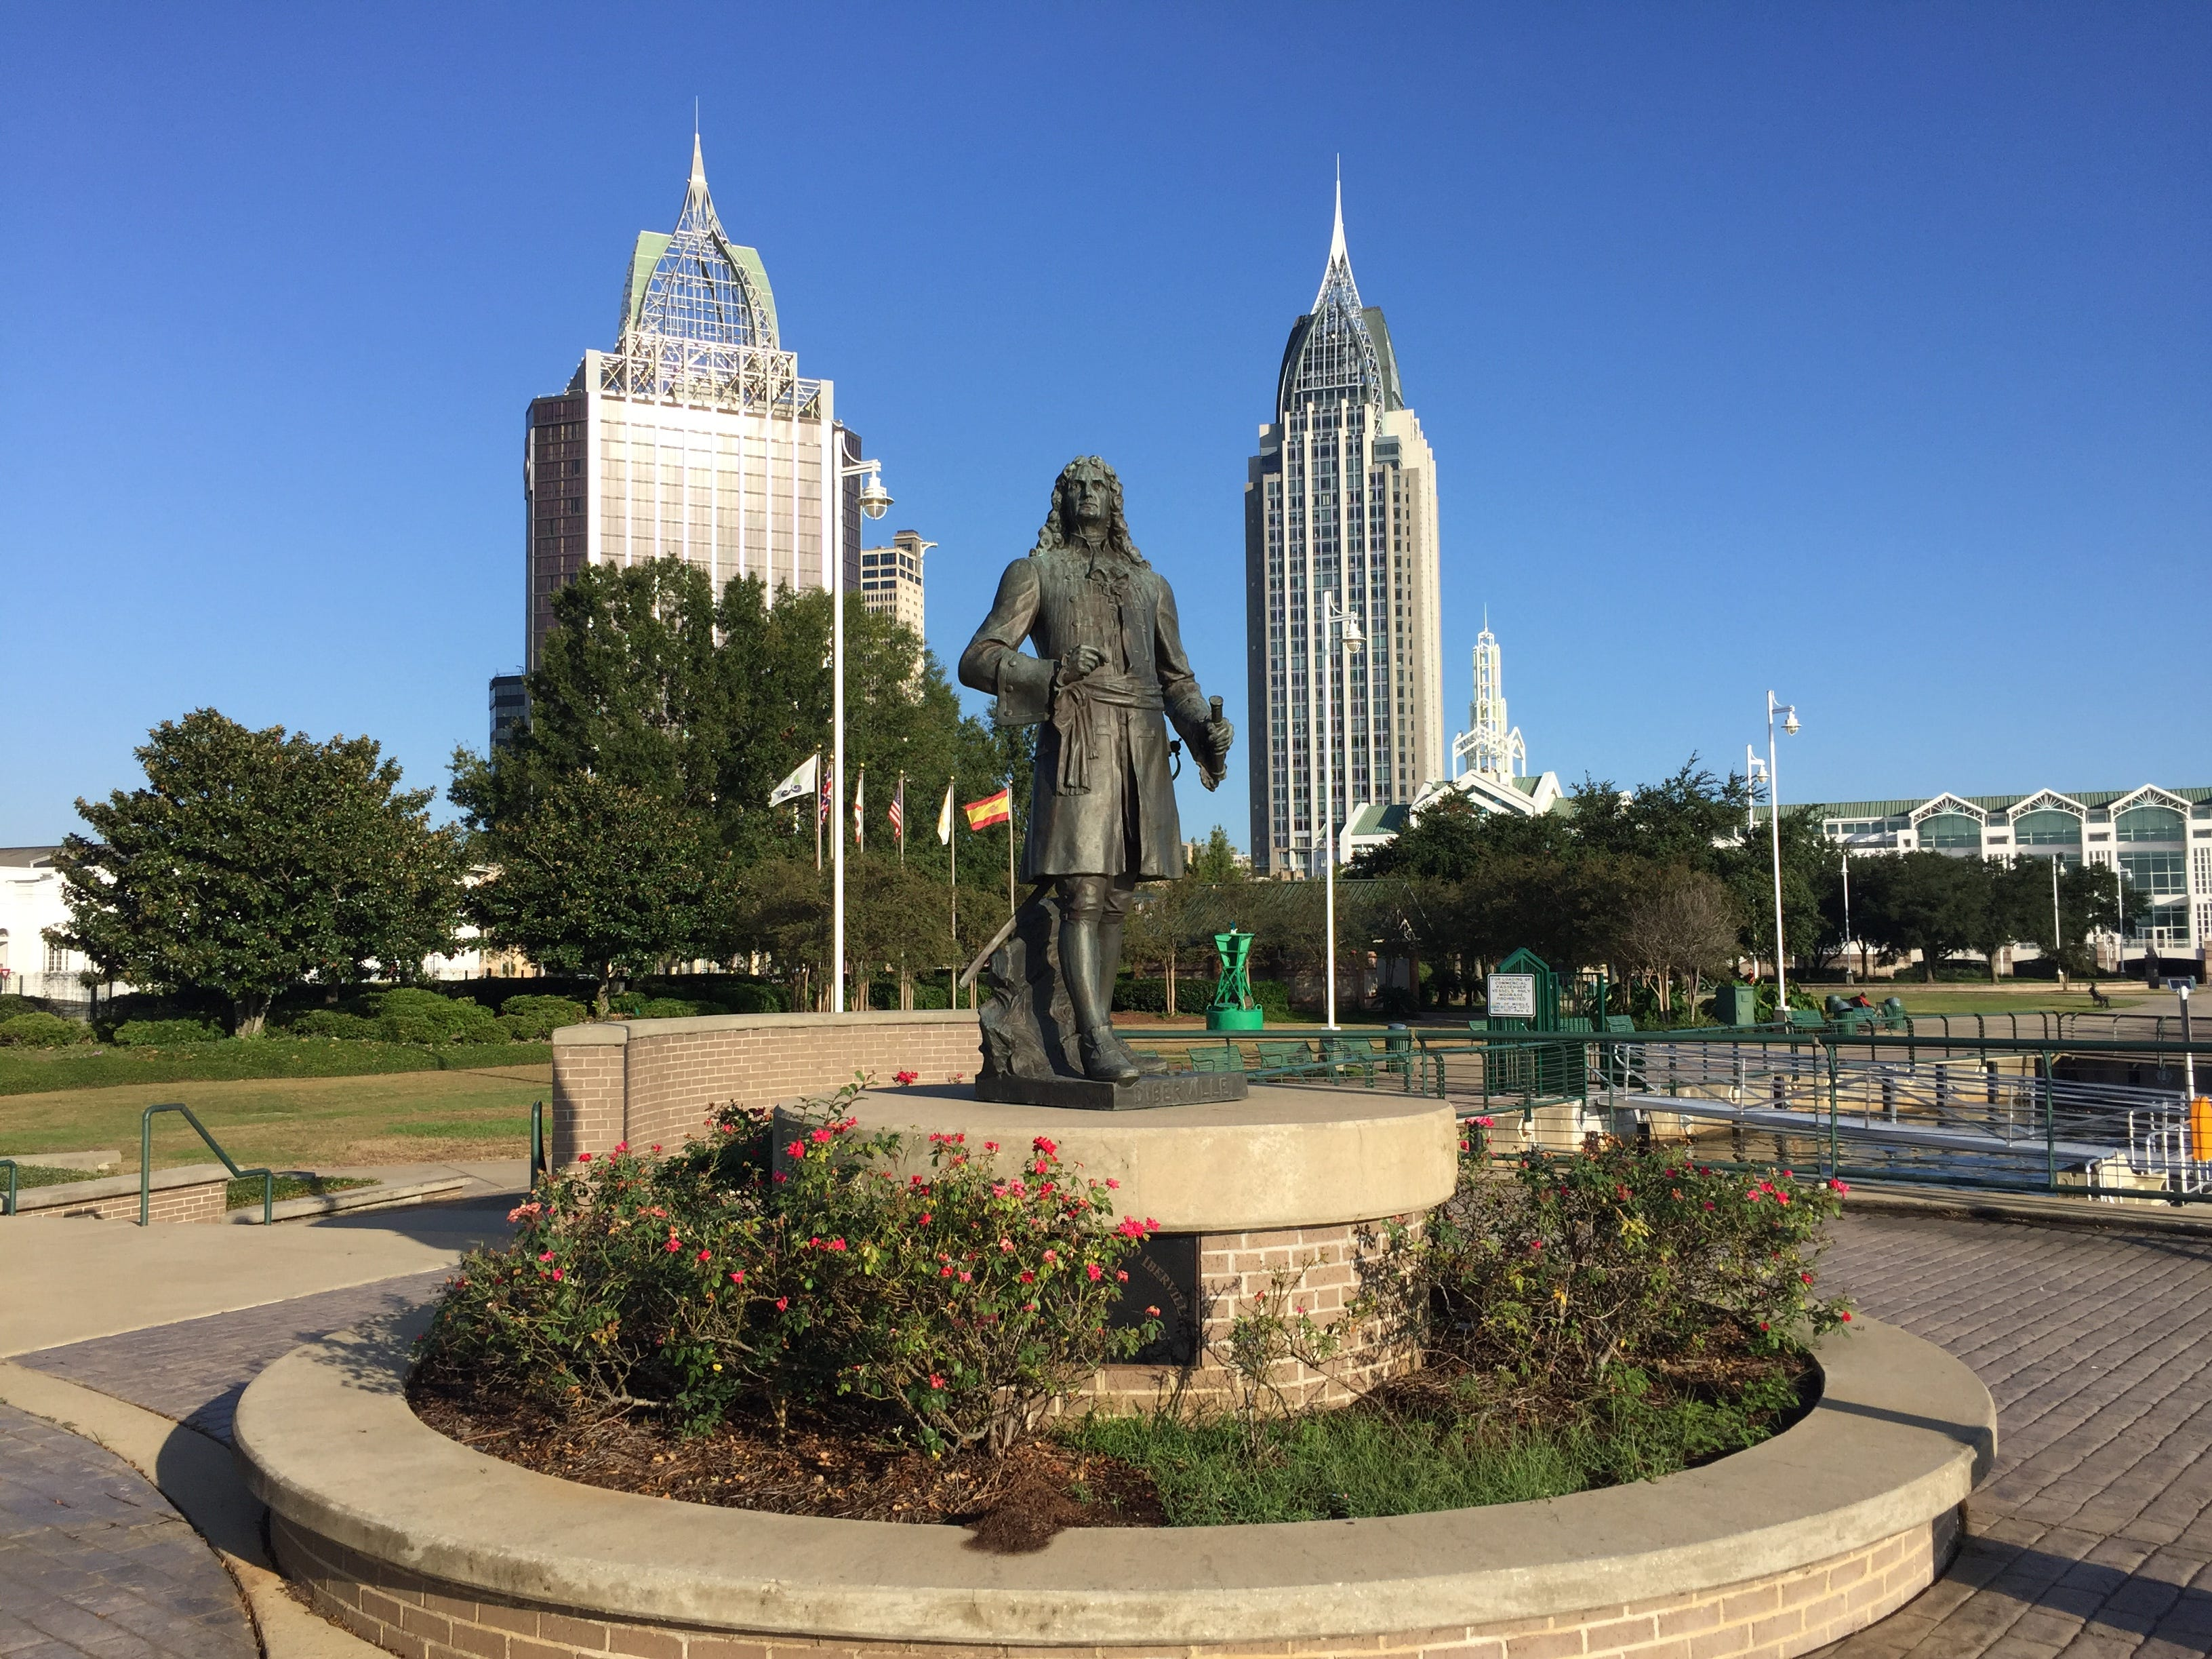 A statue of Mobile founder Jean-Baptiste Le Moyne, Sieur de Bienville, stands in Cooper Riverside Park before two of Alabama's tallest skyscrapers: the RSA Battle House Tower, right, and the Renaissance Riverview Plaza Hotel.